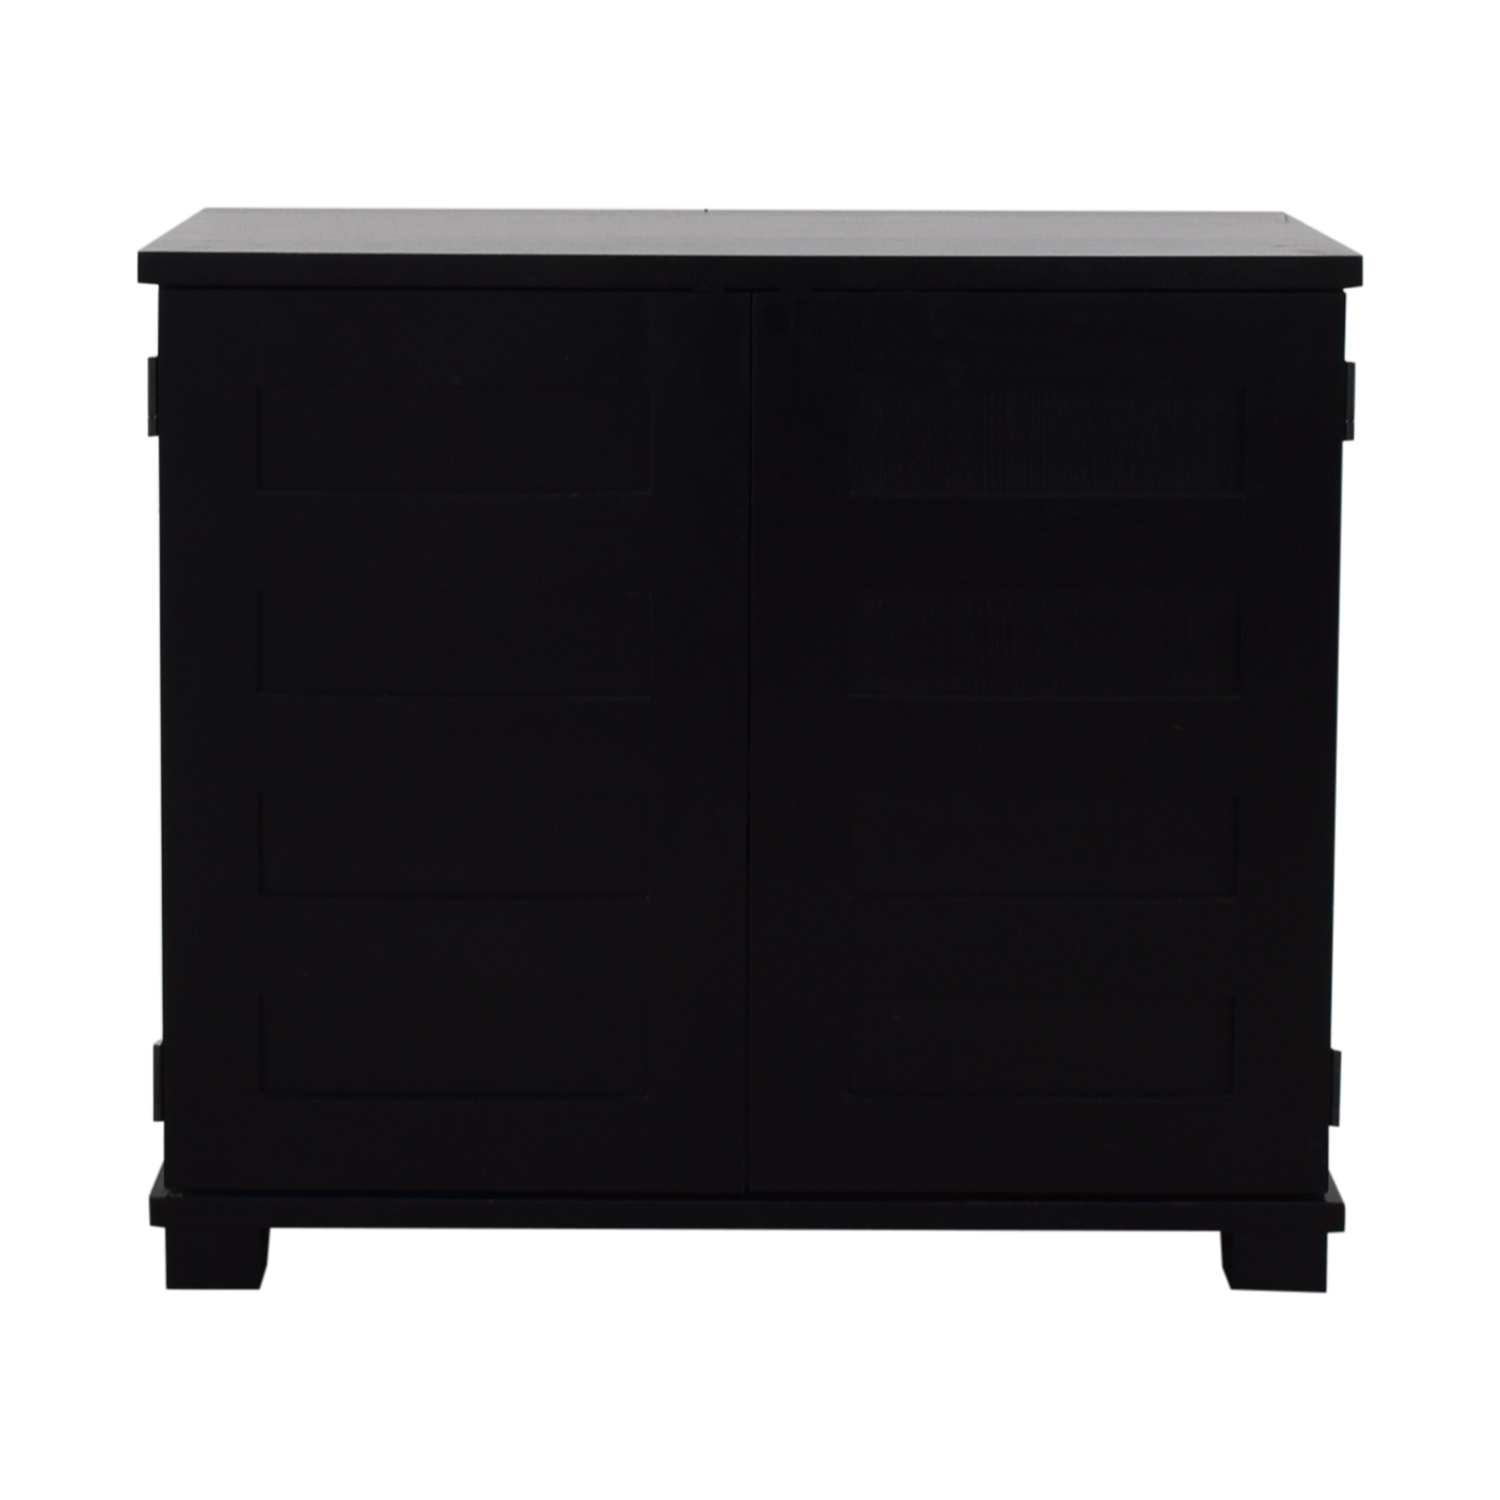 Crate & Barrel Crate & Barrel Storage Desk dimensions